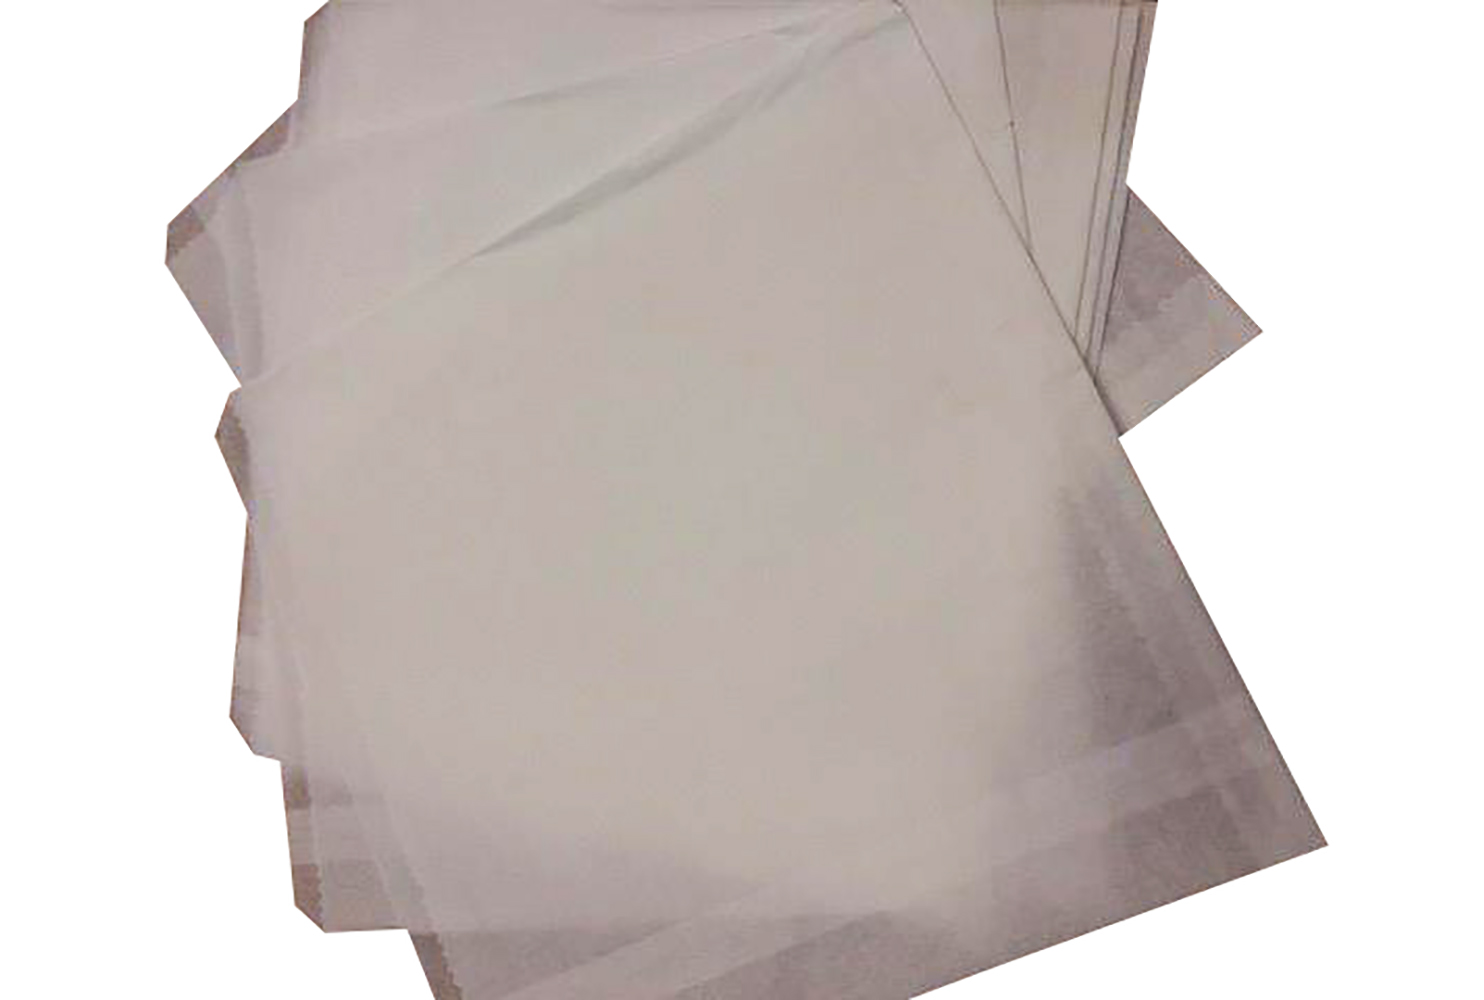 IMITATION GREASE PROOF BAGS 8.5X8.5